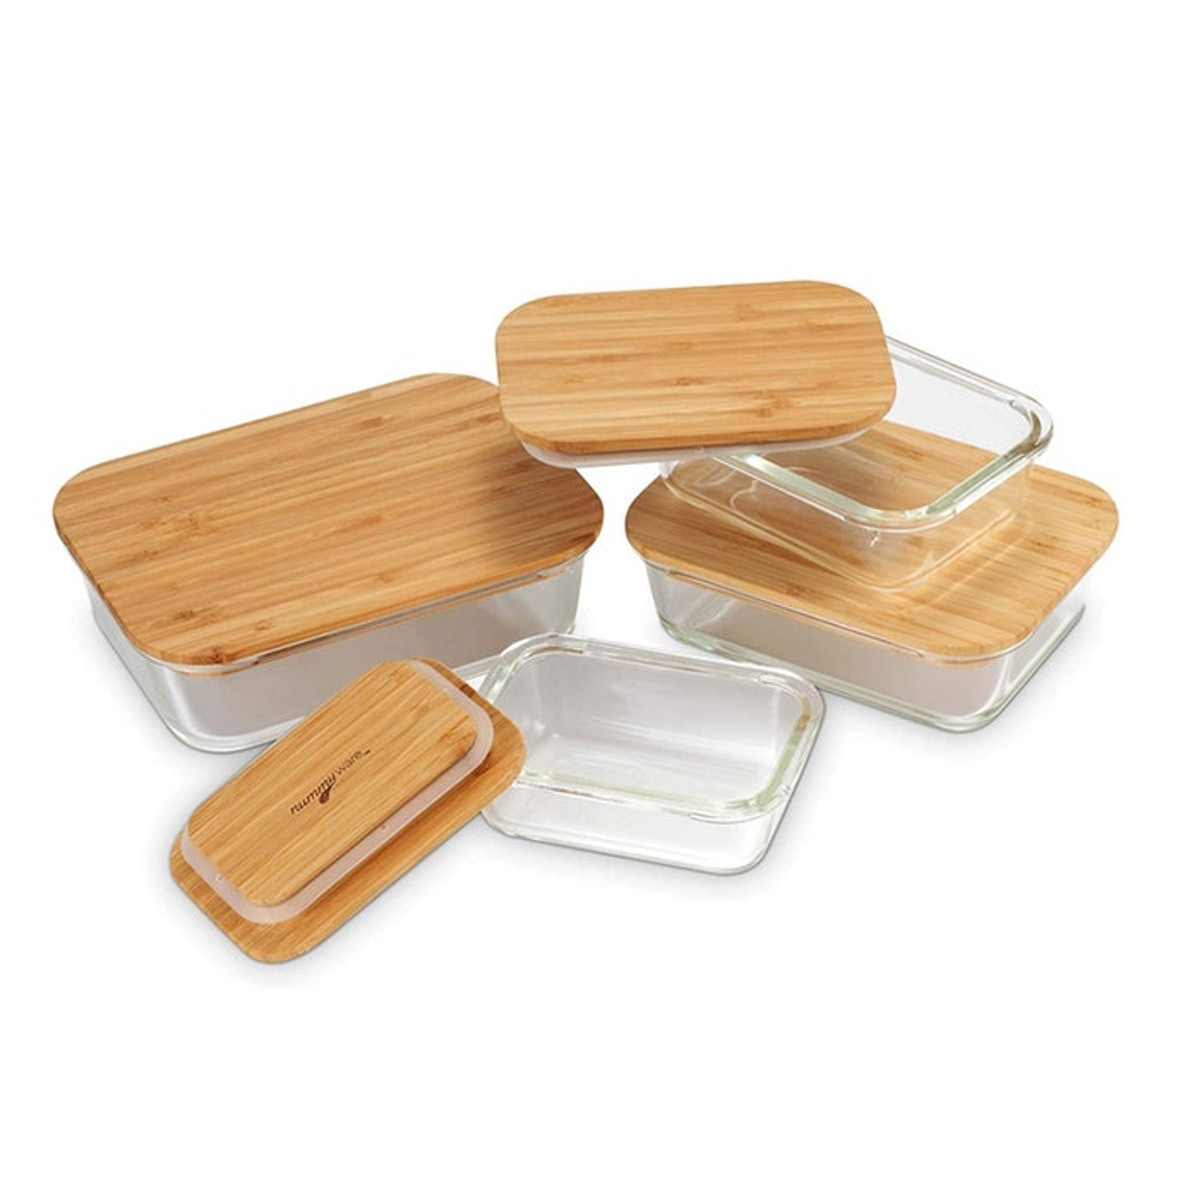 Nummyware Plastic-Free Food Containers (Set of 4)